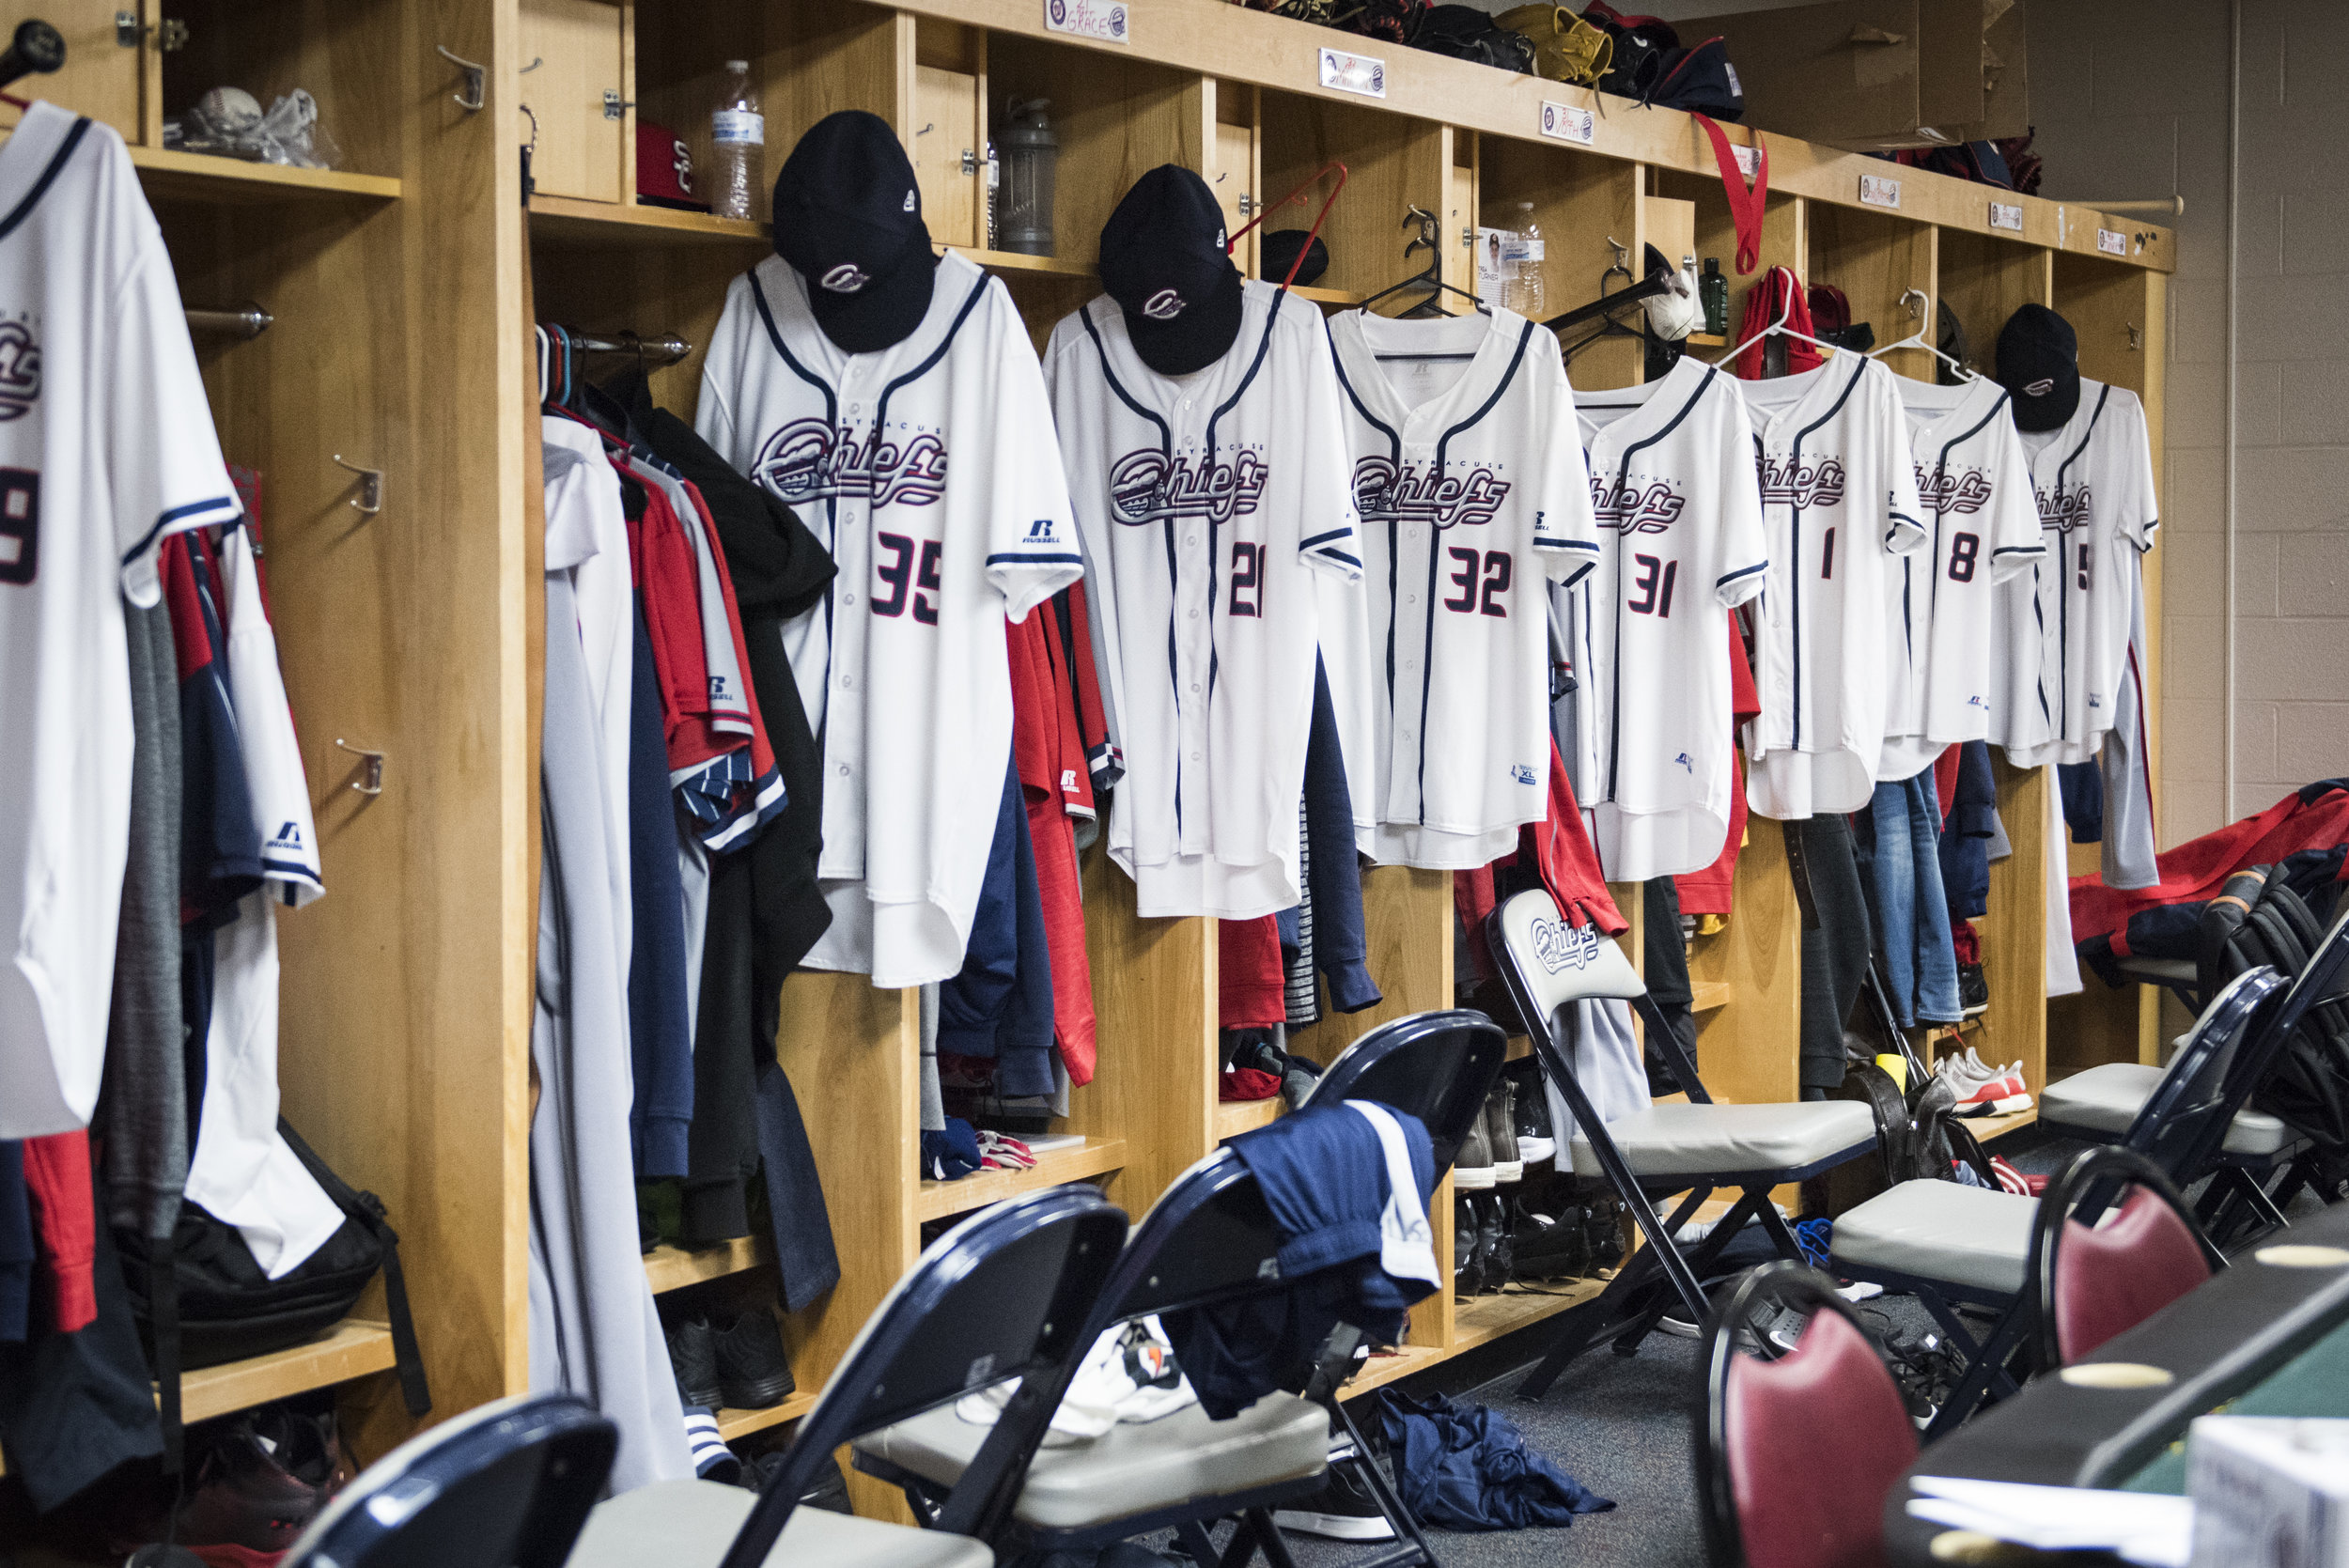 The Syracuse Chiefs locker room before a game against the Norfolk Tides on April 23rd, 2017. Rafael Bautista's number 8 jersey hangs in front of his locker.